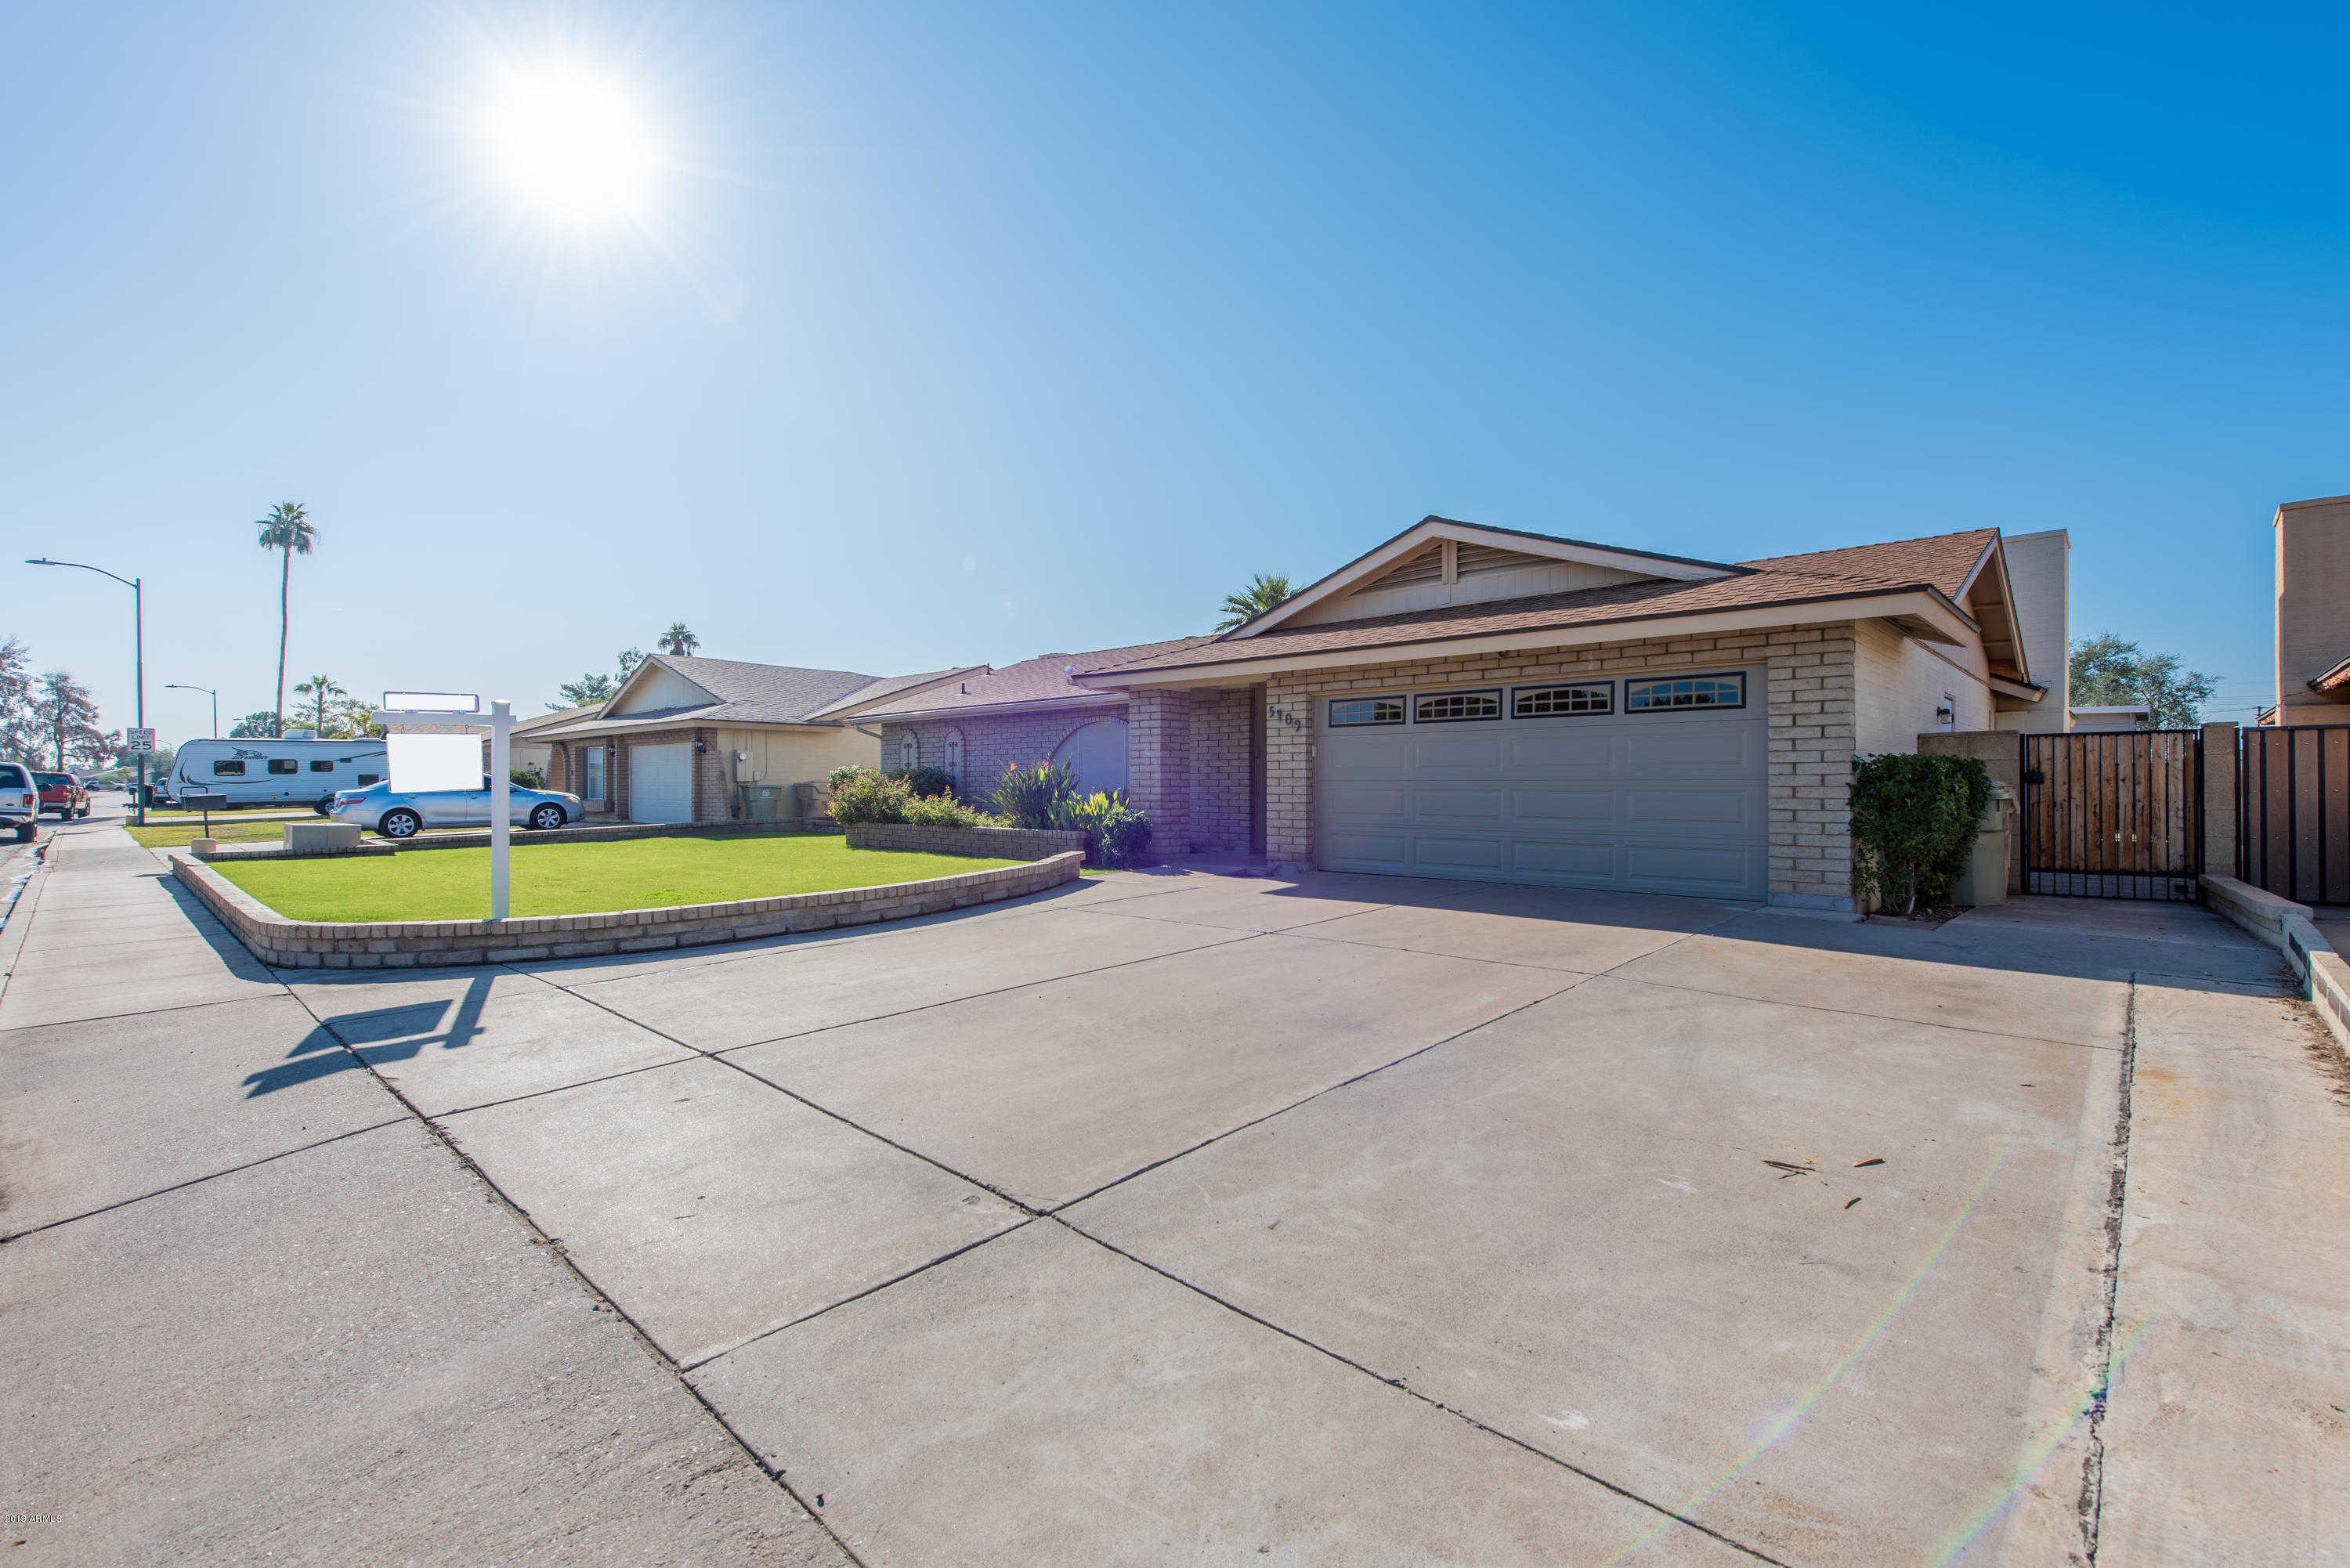 $335,900 - 3Br/2Ba - Home for Sale in Thunderbird Palms 1 Lot 1-315, Glendale